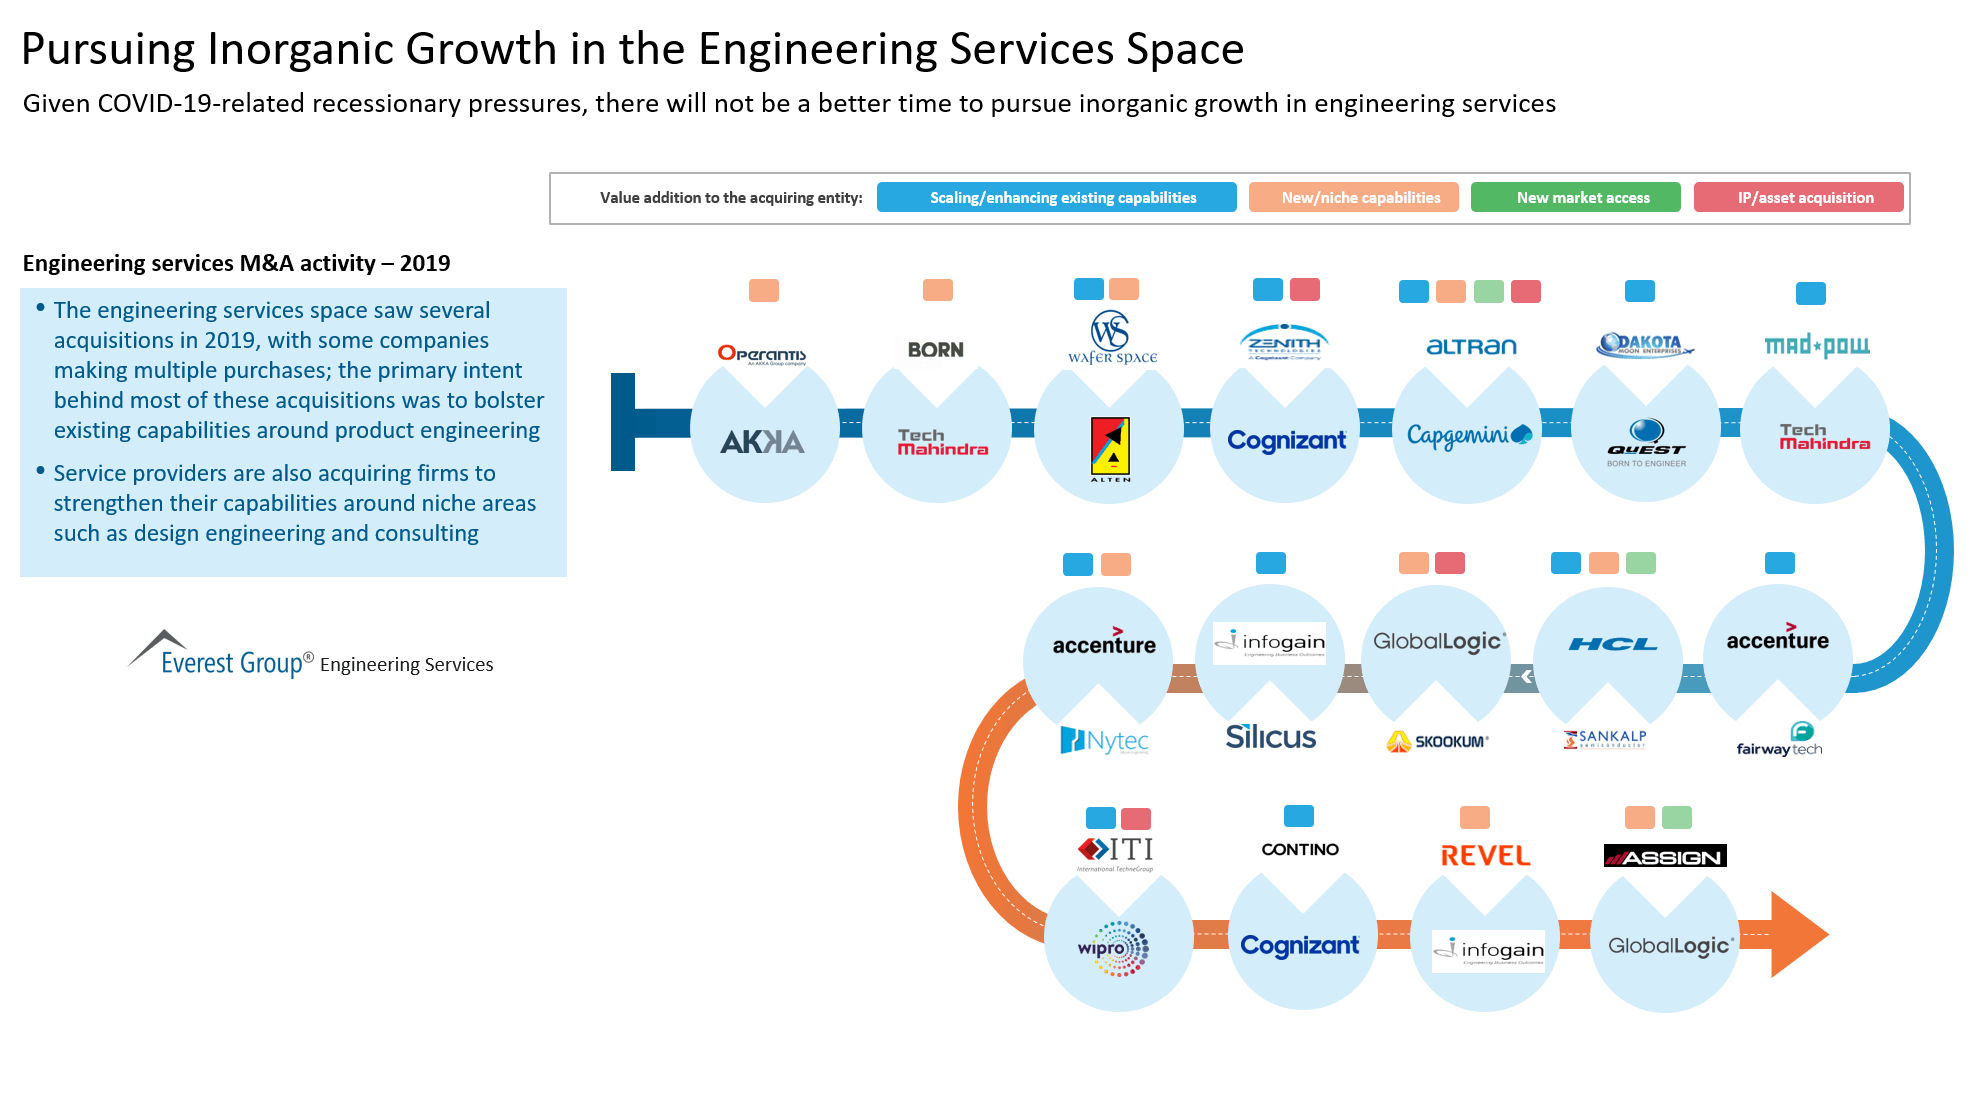 Pursuing Inorganic Growth in the Engineering Services Space